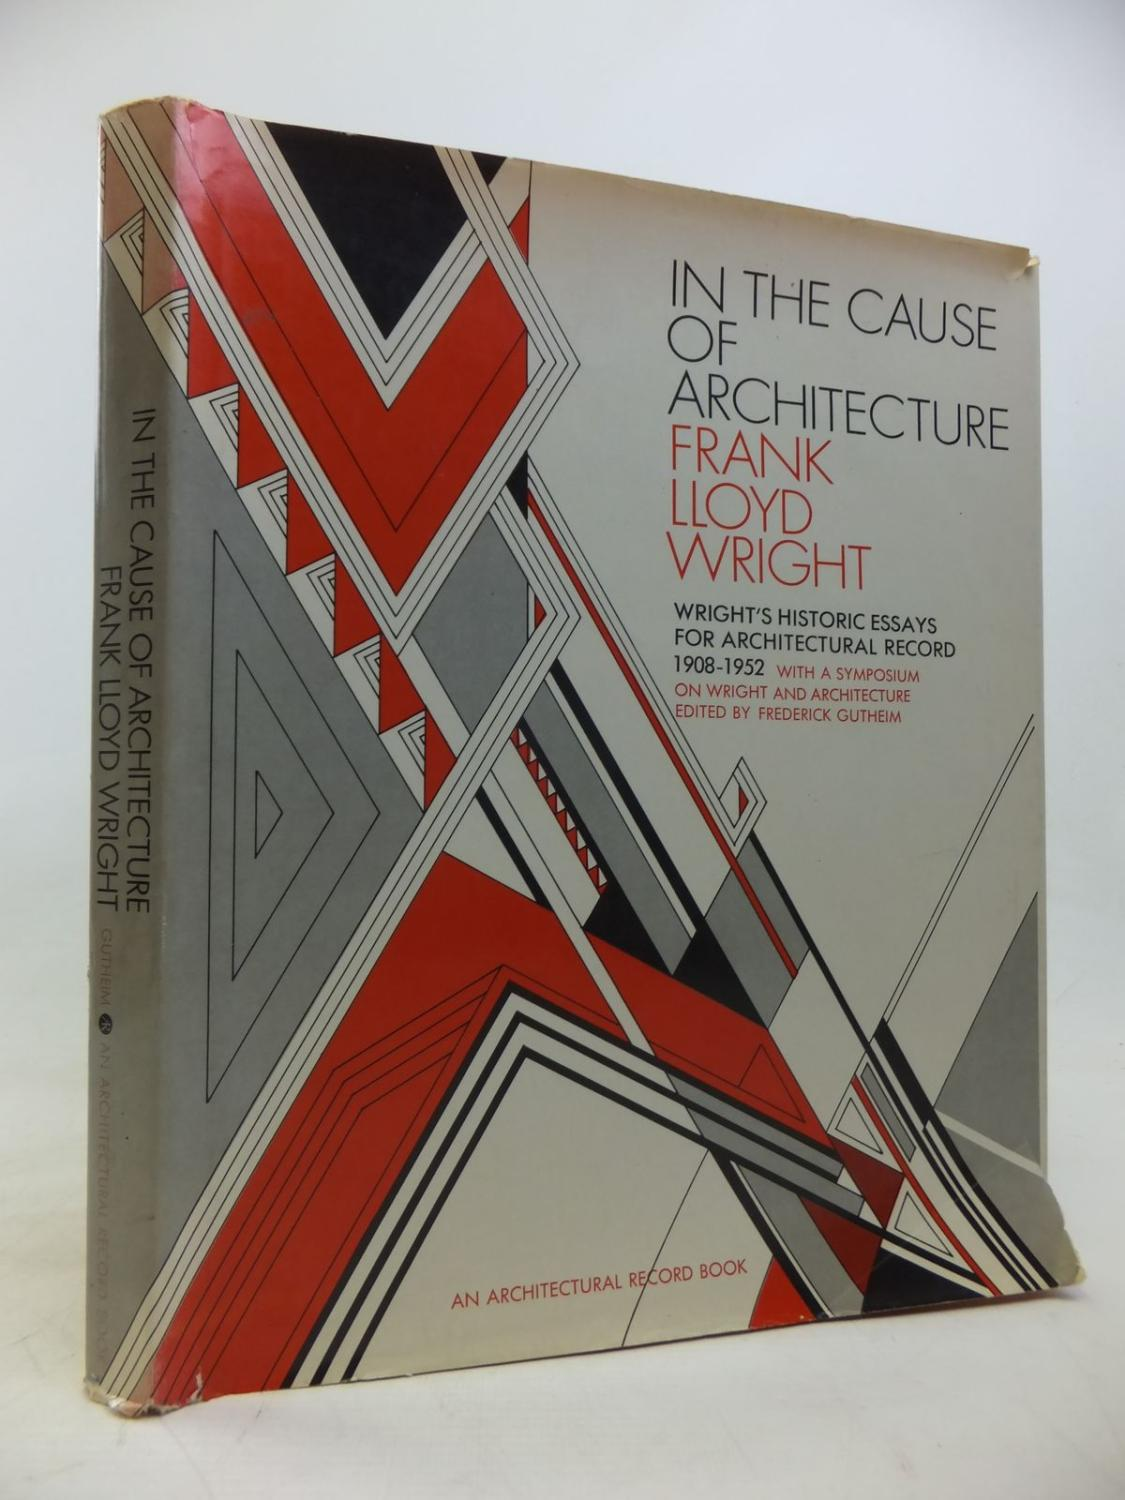 in the cause of architecture essays by frank lloyd 0070253501 in the cause of architecture essays by frank lloyd wright for architectural record 1908 1952 by frank lloyd wright abebooks